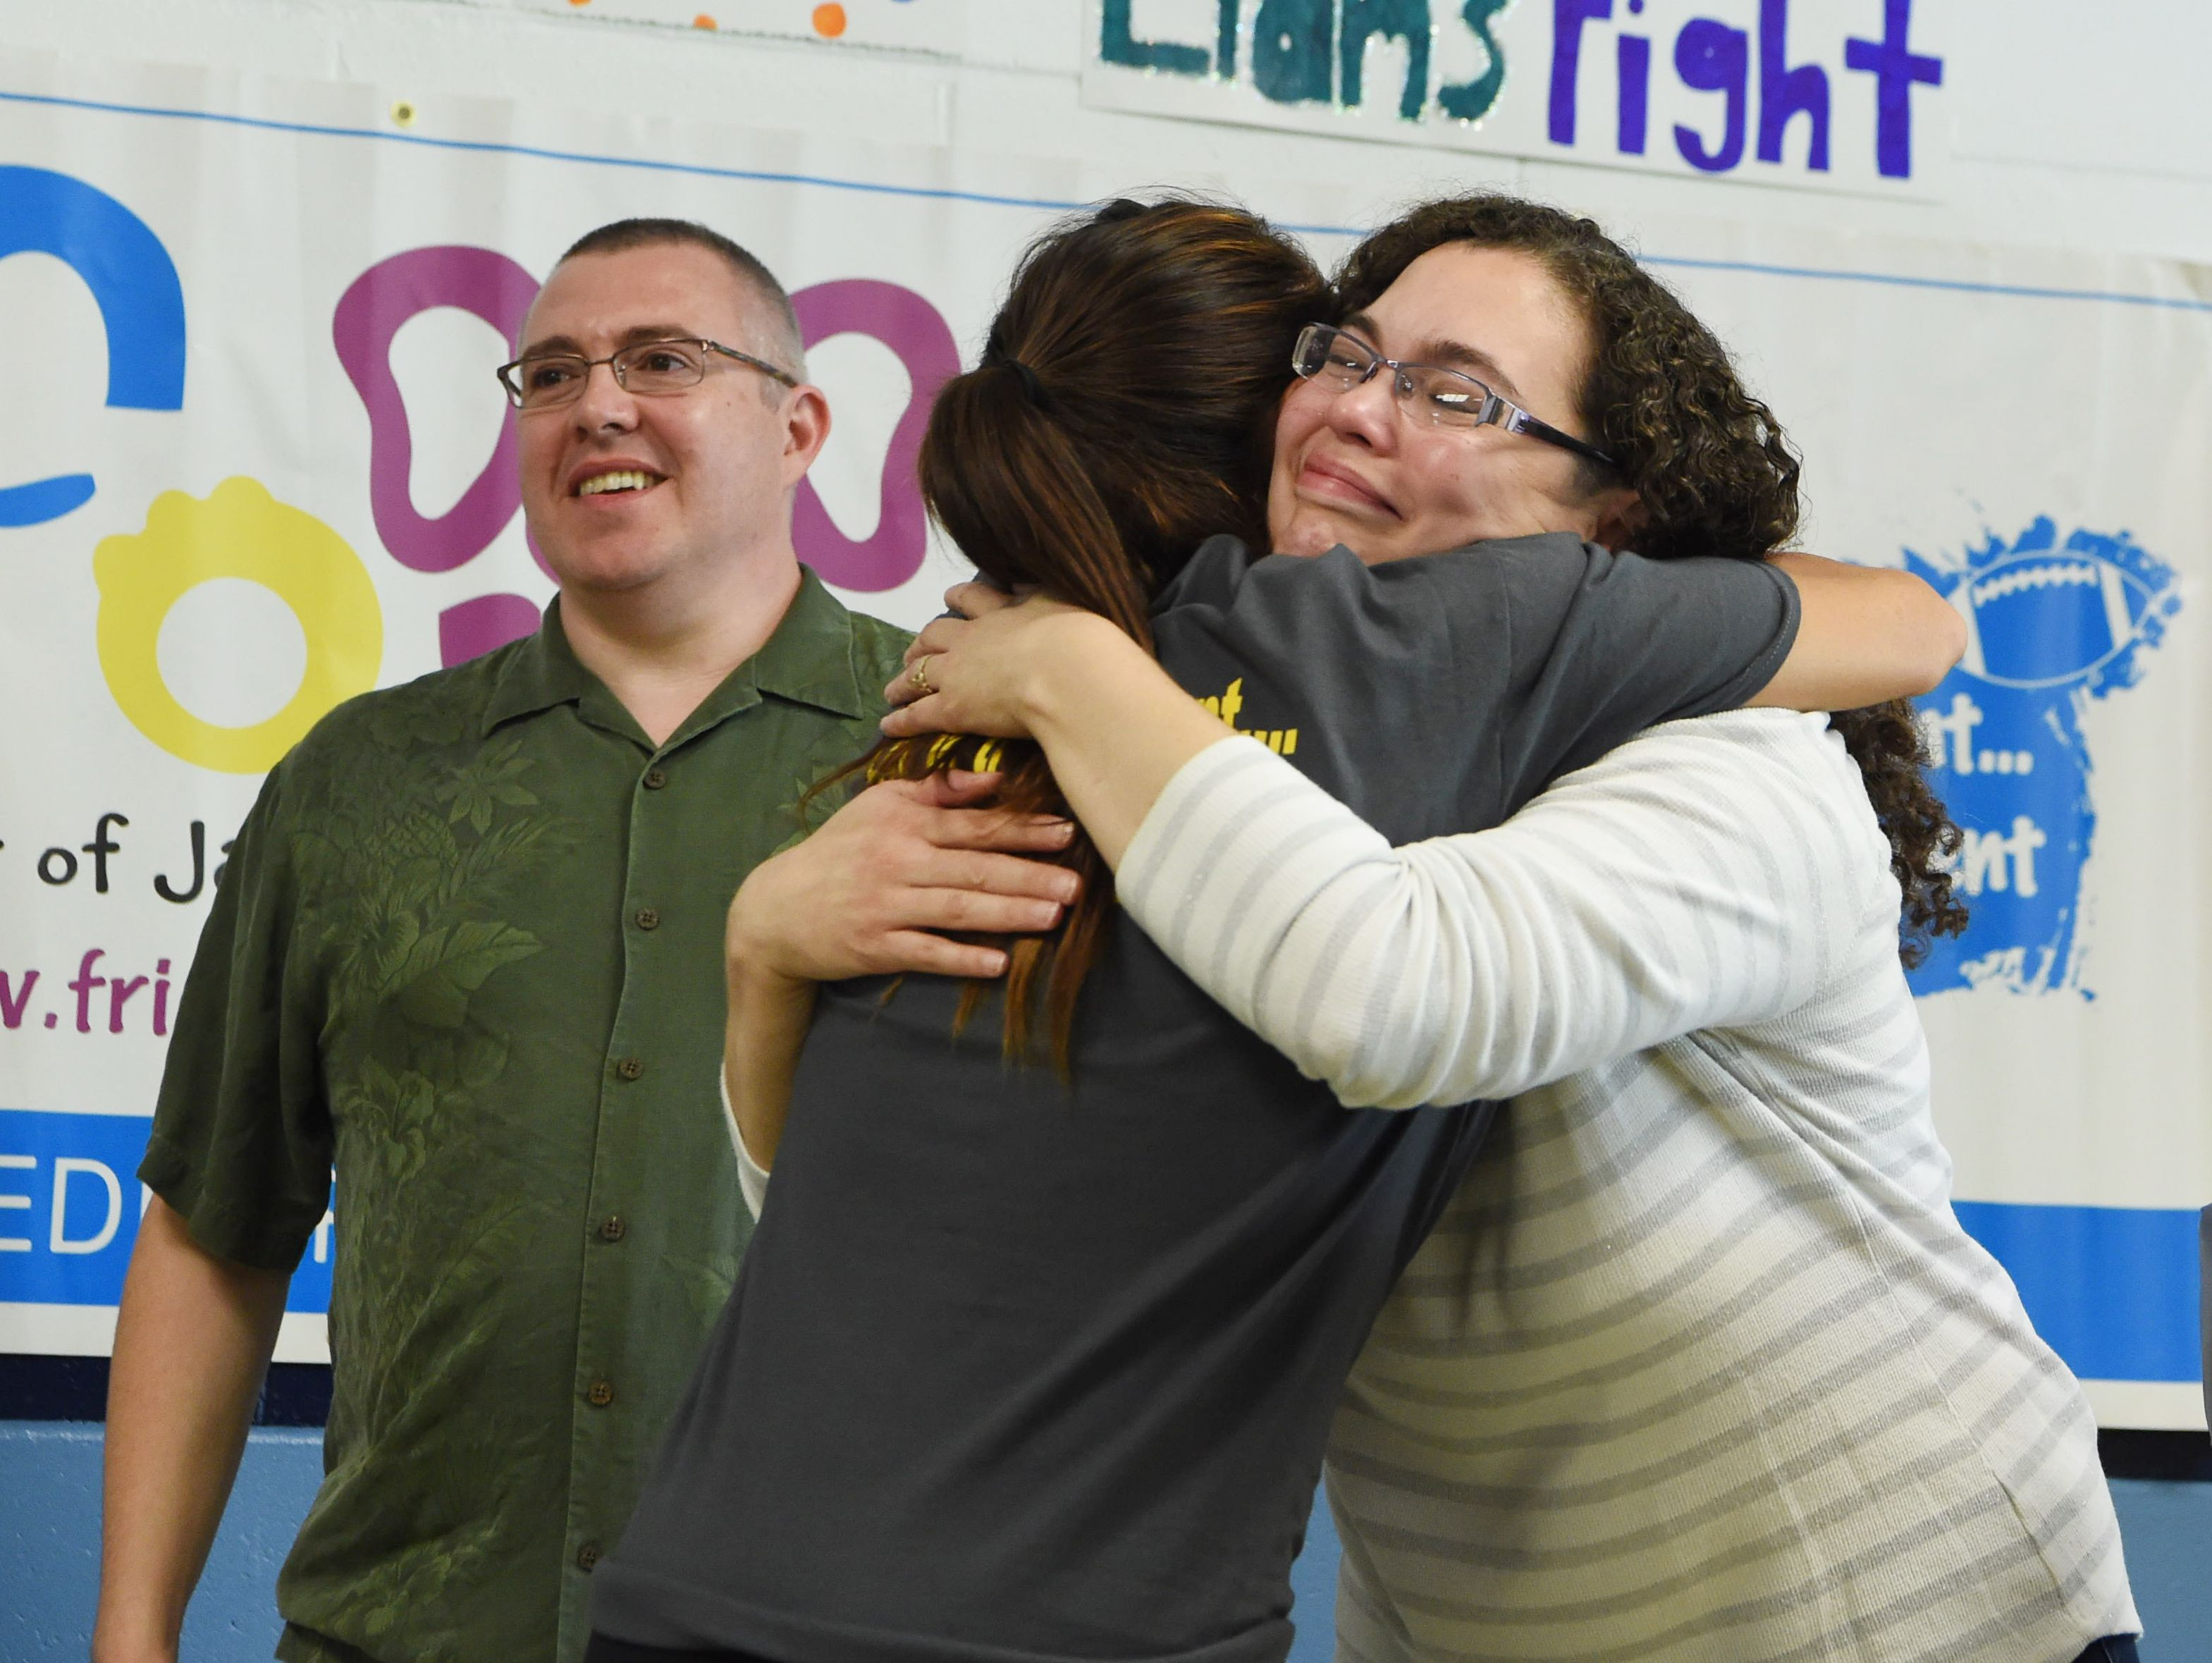 """Kristen Perry, center, a physical education teacher and the field hockey coach at John Jay High School, gives a hug to Jeanmarie Craane, right. The school's field hockey team """"adopted"""" Craane's son Liam, 5, who is battling pediatric cancer, through the Friends of Jaclyn Foundation."""